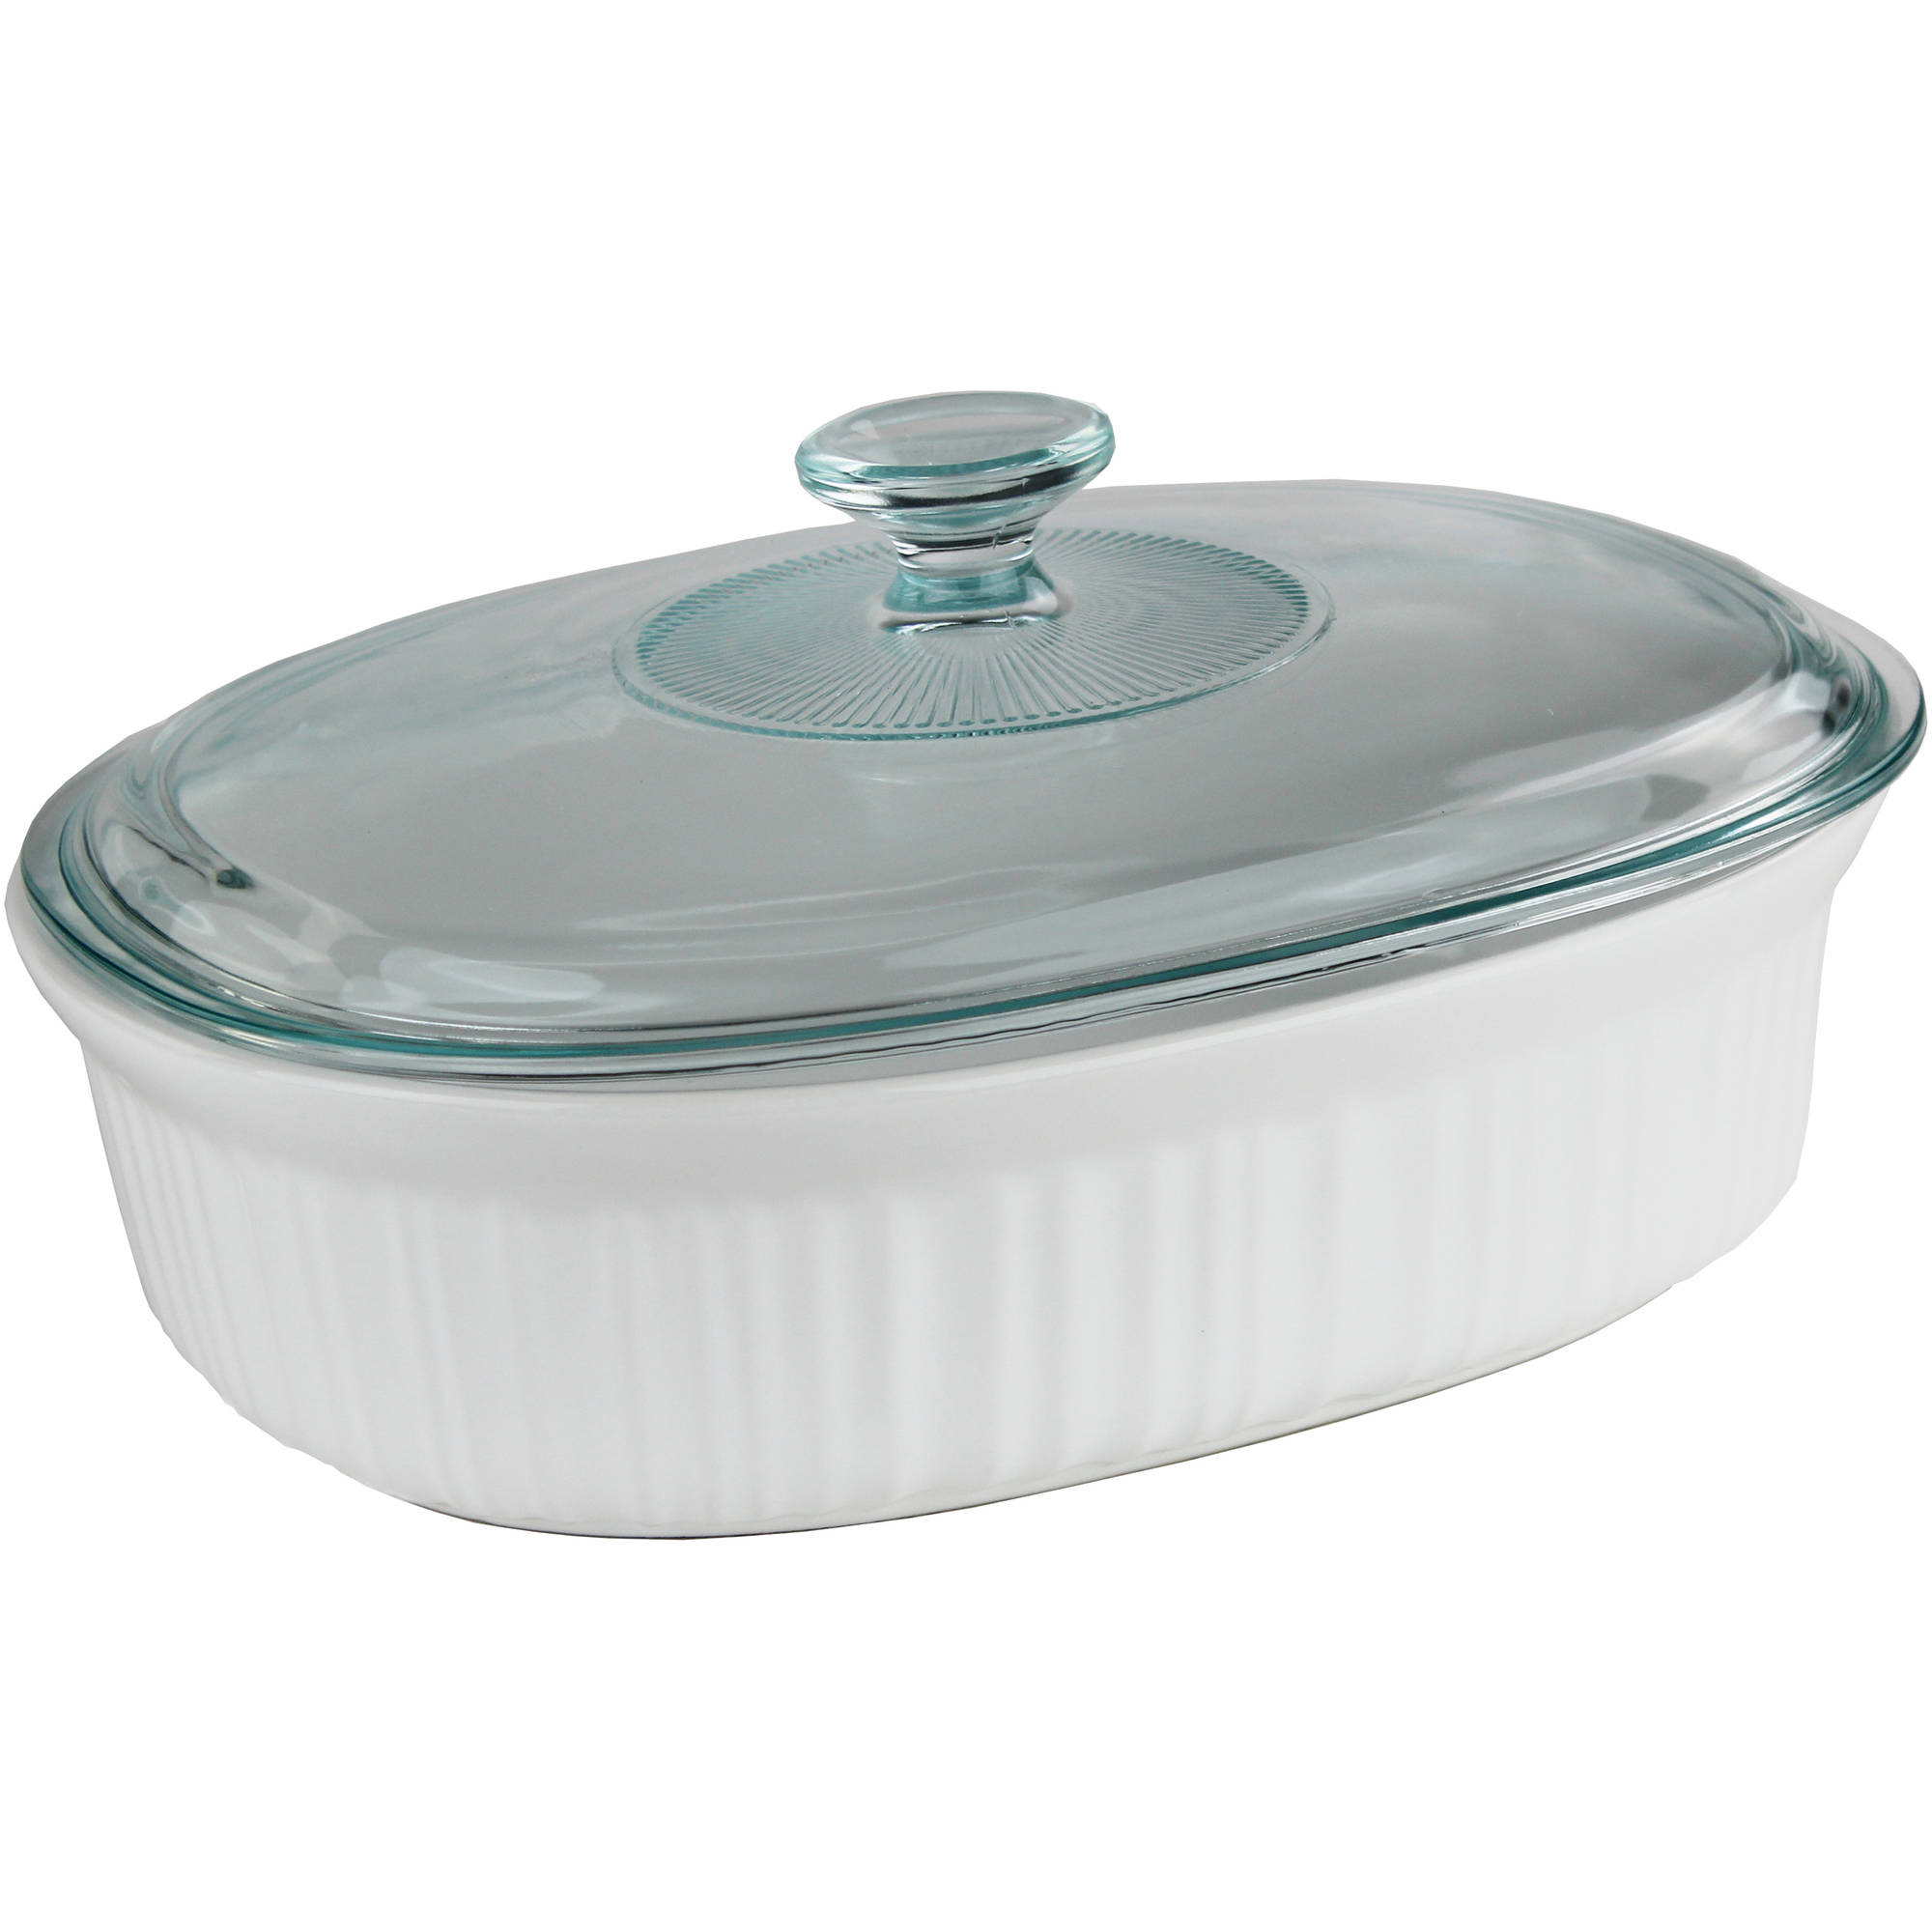 Corningware French White 2 5 Quart Oval Baking Dish With Gl Lid